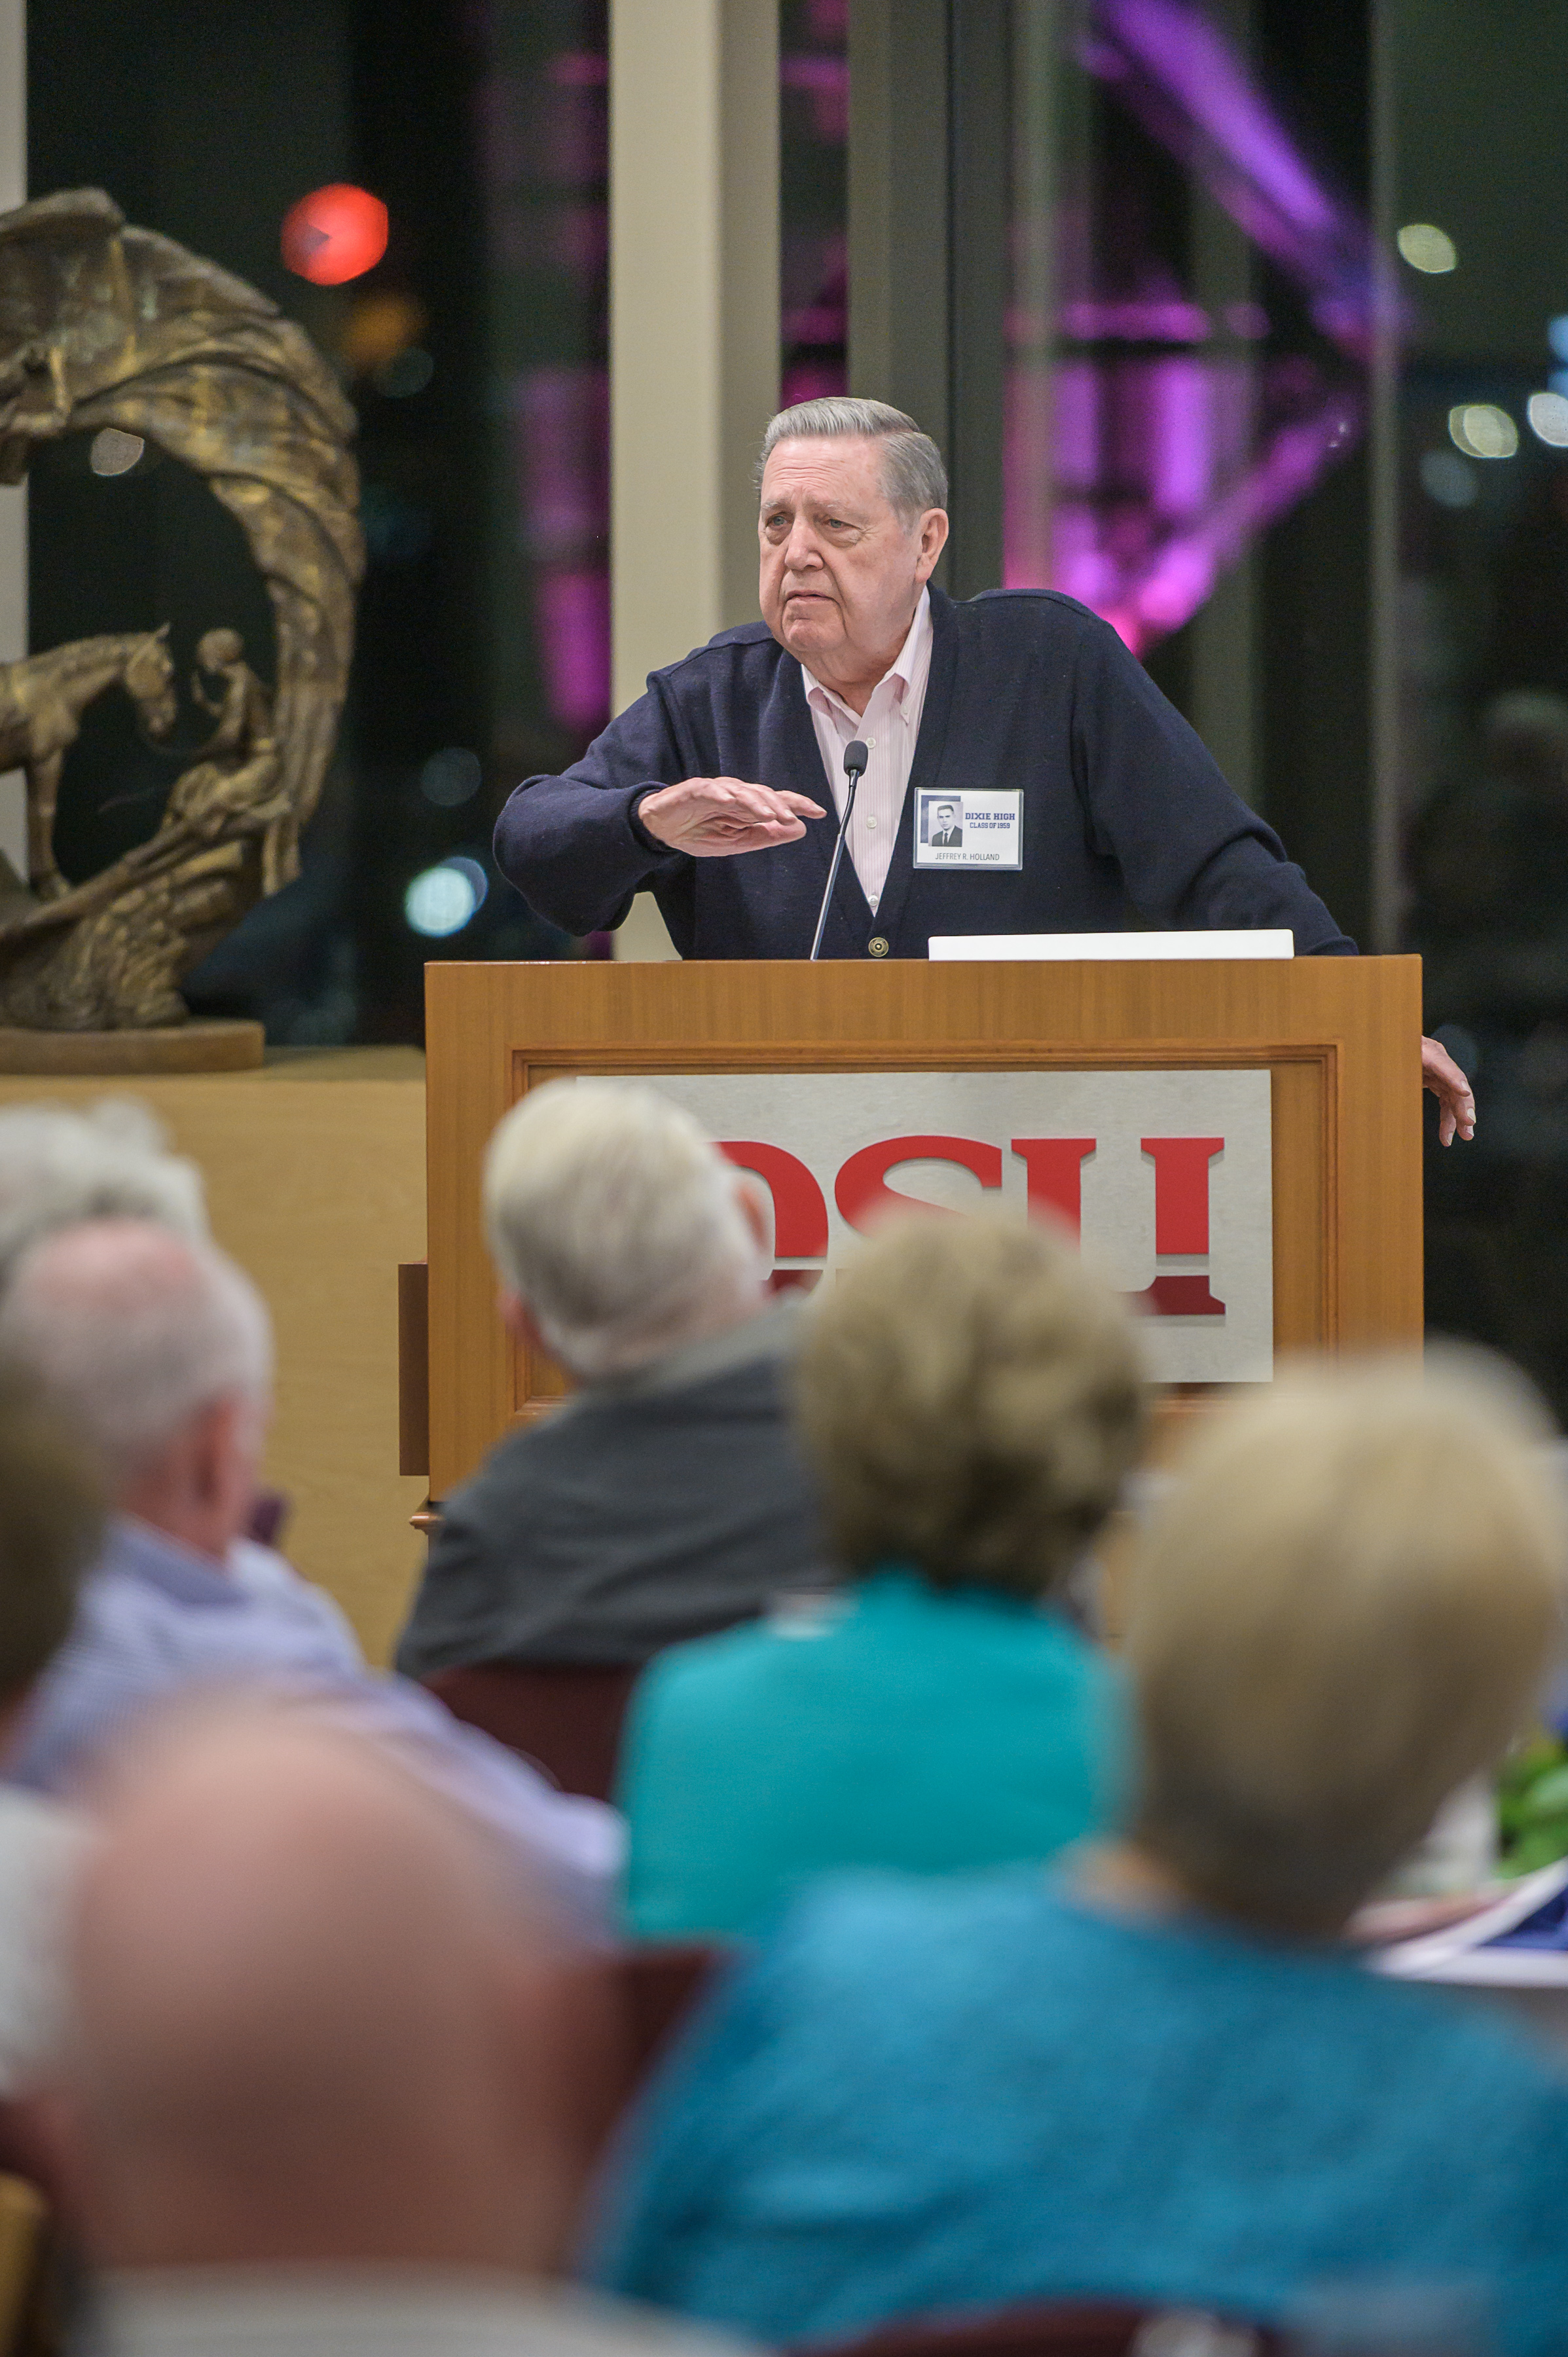 Elder Jeffrey R. Holland, a member of the Quorum of the Twelve Apostles of The Church of Jesus Christ of Latter-day Saints, speaks to his high school classmates and other guests at the 60-year reunion for the Dixie High School class of 1959 on Thursday, Oct. 24, 2019, in St. George.